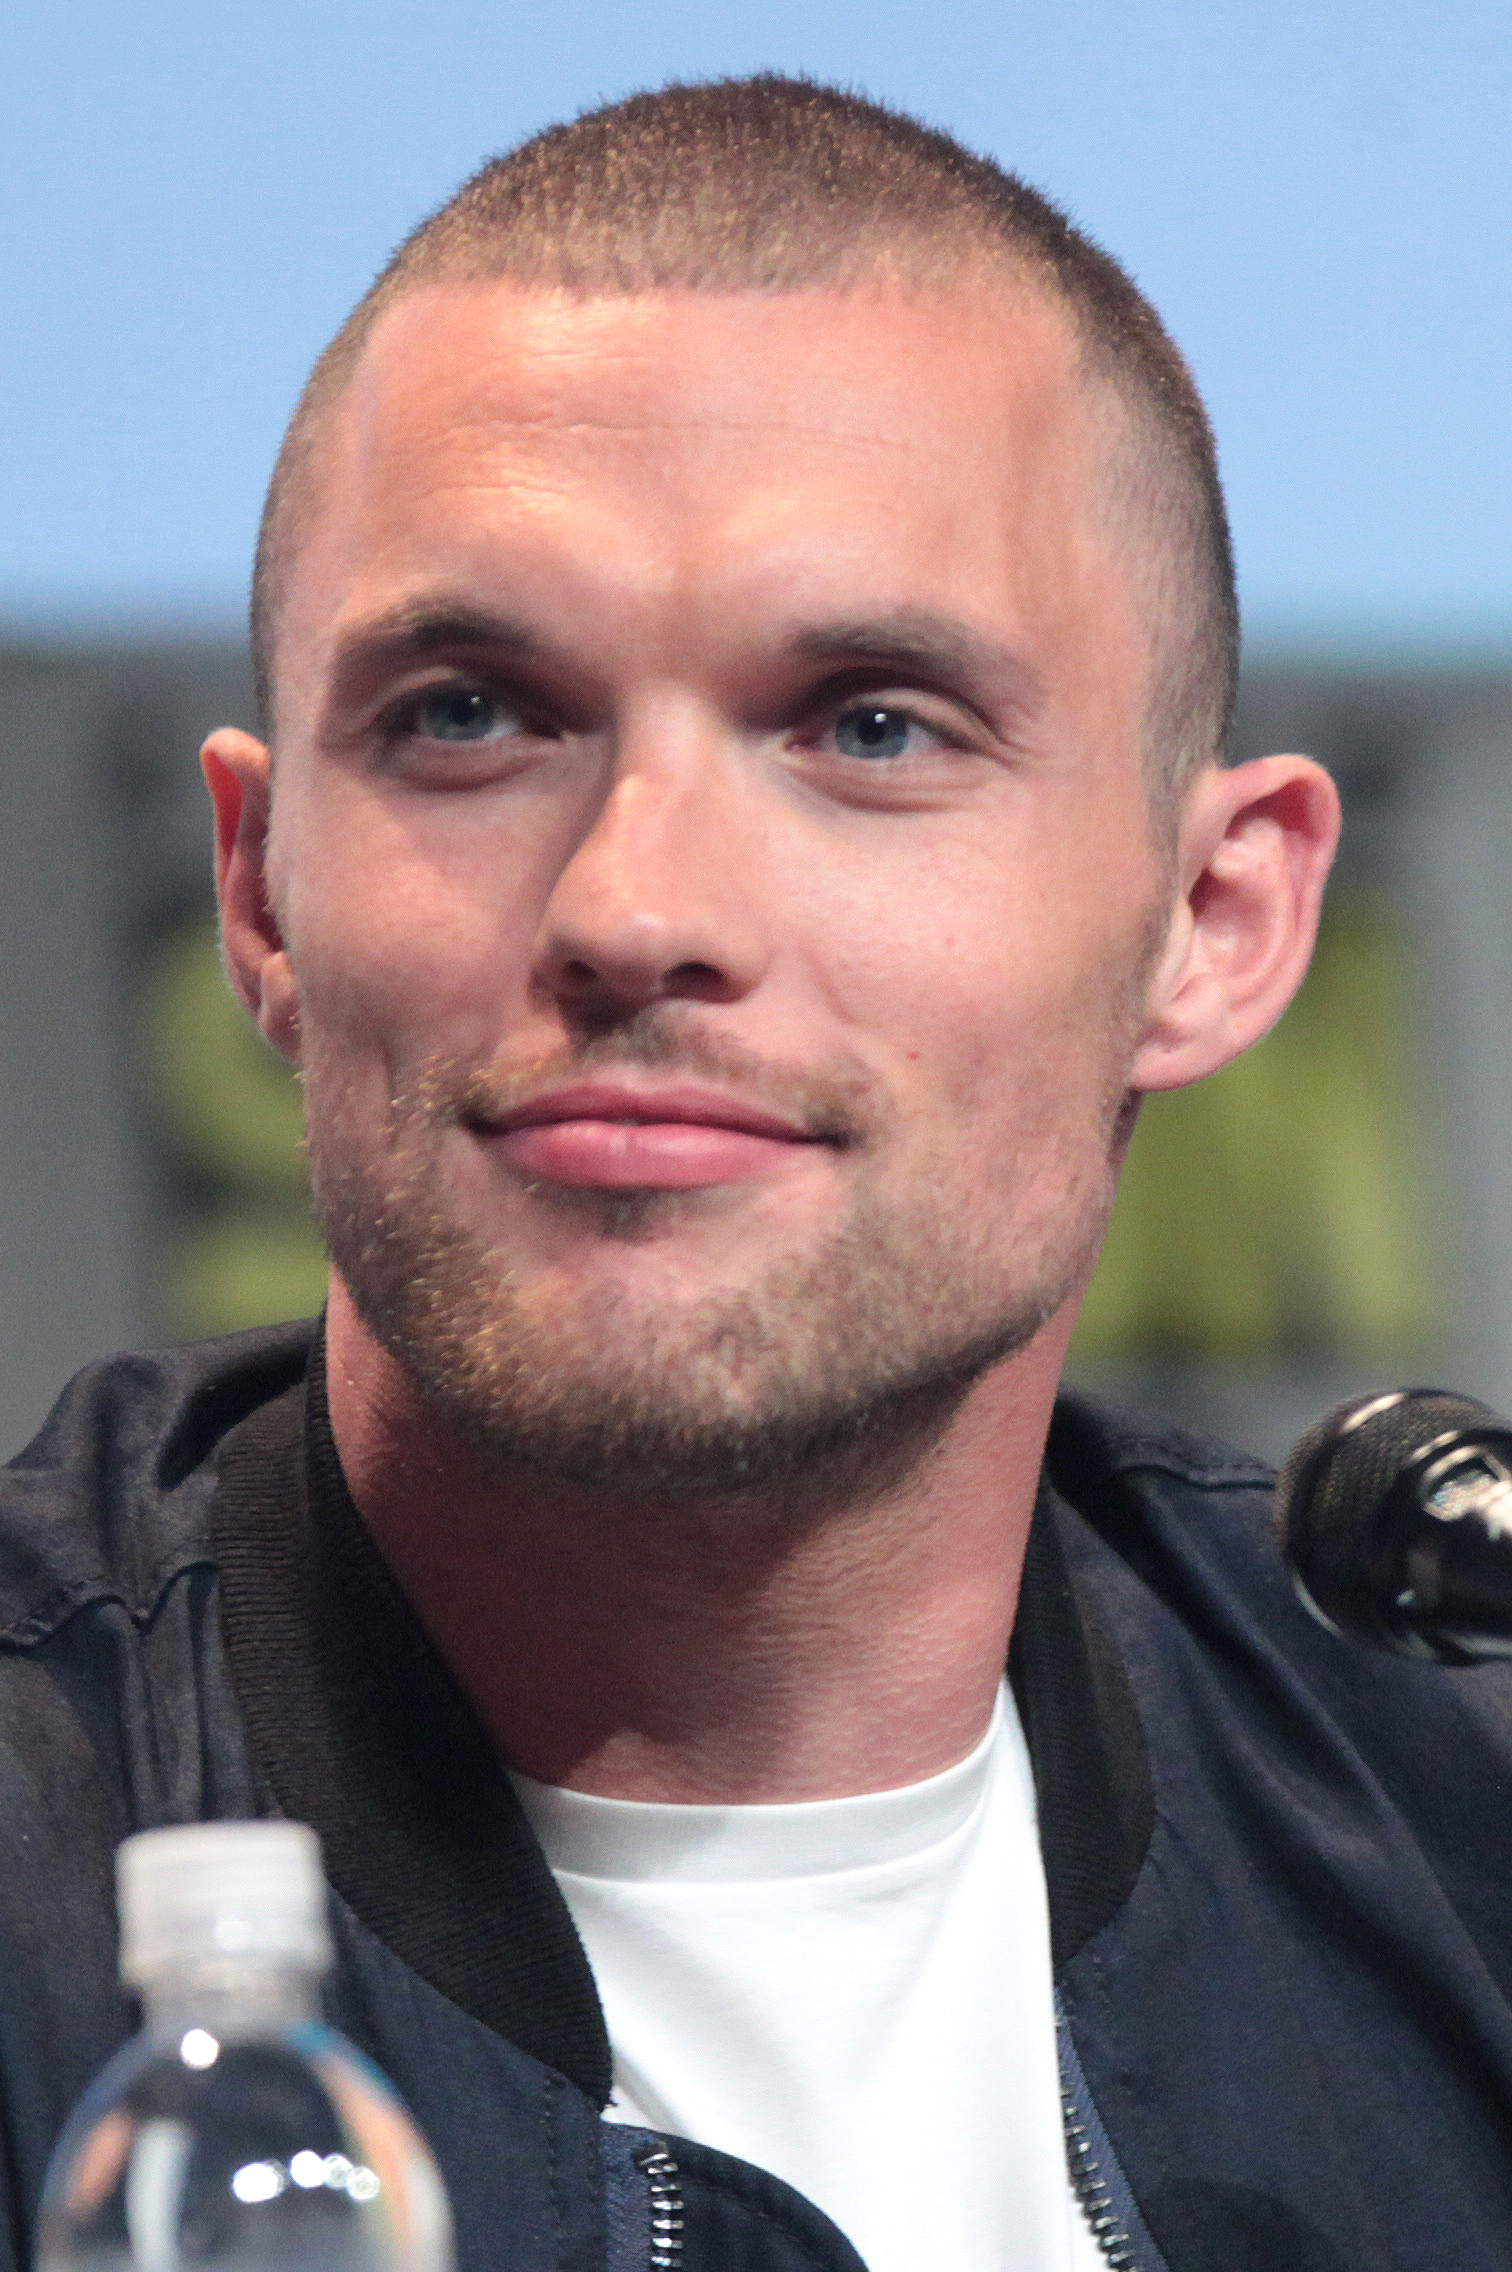 The 35-year old son of father (?) and mother(?) Ed Skrein in 2018 photo. Ed Skrein earned a  million dollar salary - leaving the net worth at 2 million in 2018